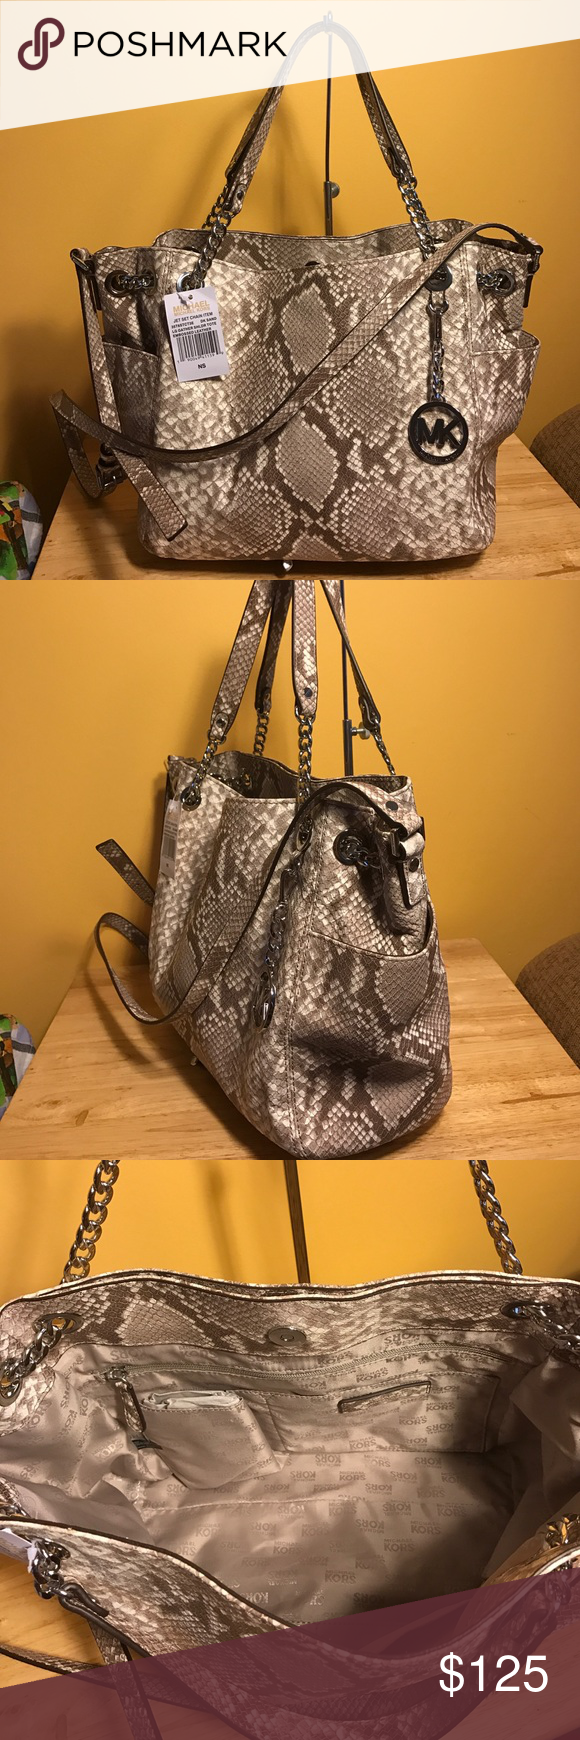 """New Michael kors large gathered dark sand tote Dark Sand python-embossed leather  * Silver tone hardware.  * Top handles with chain accents.  * Adjustable buckled shoulder strap.  * Cinched grommet sides.  * Removable MK logo circle charm.  * Approximate measurements: 16""""Lx 11""""h x 4""""D. Michael Kors Bags Totes"""